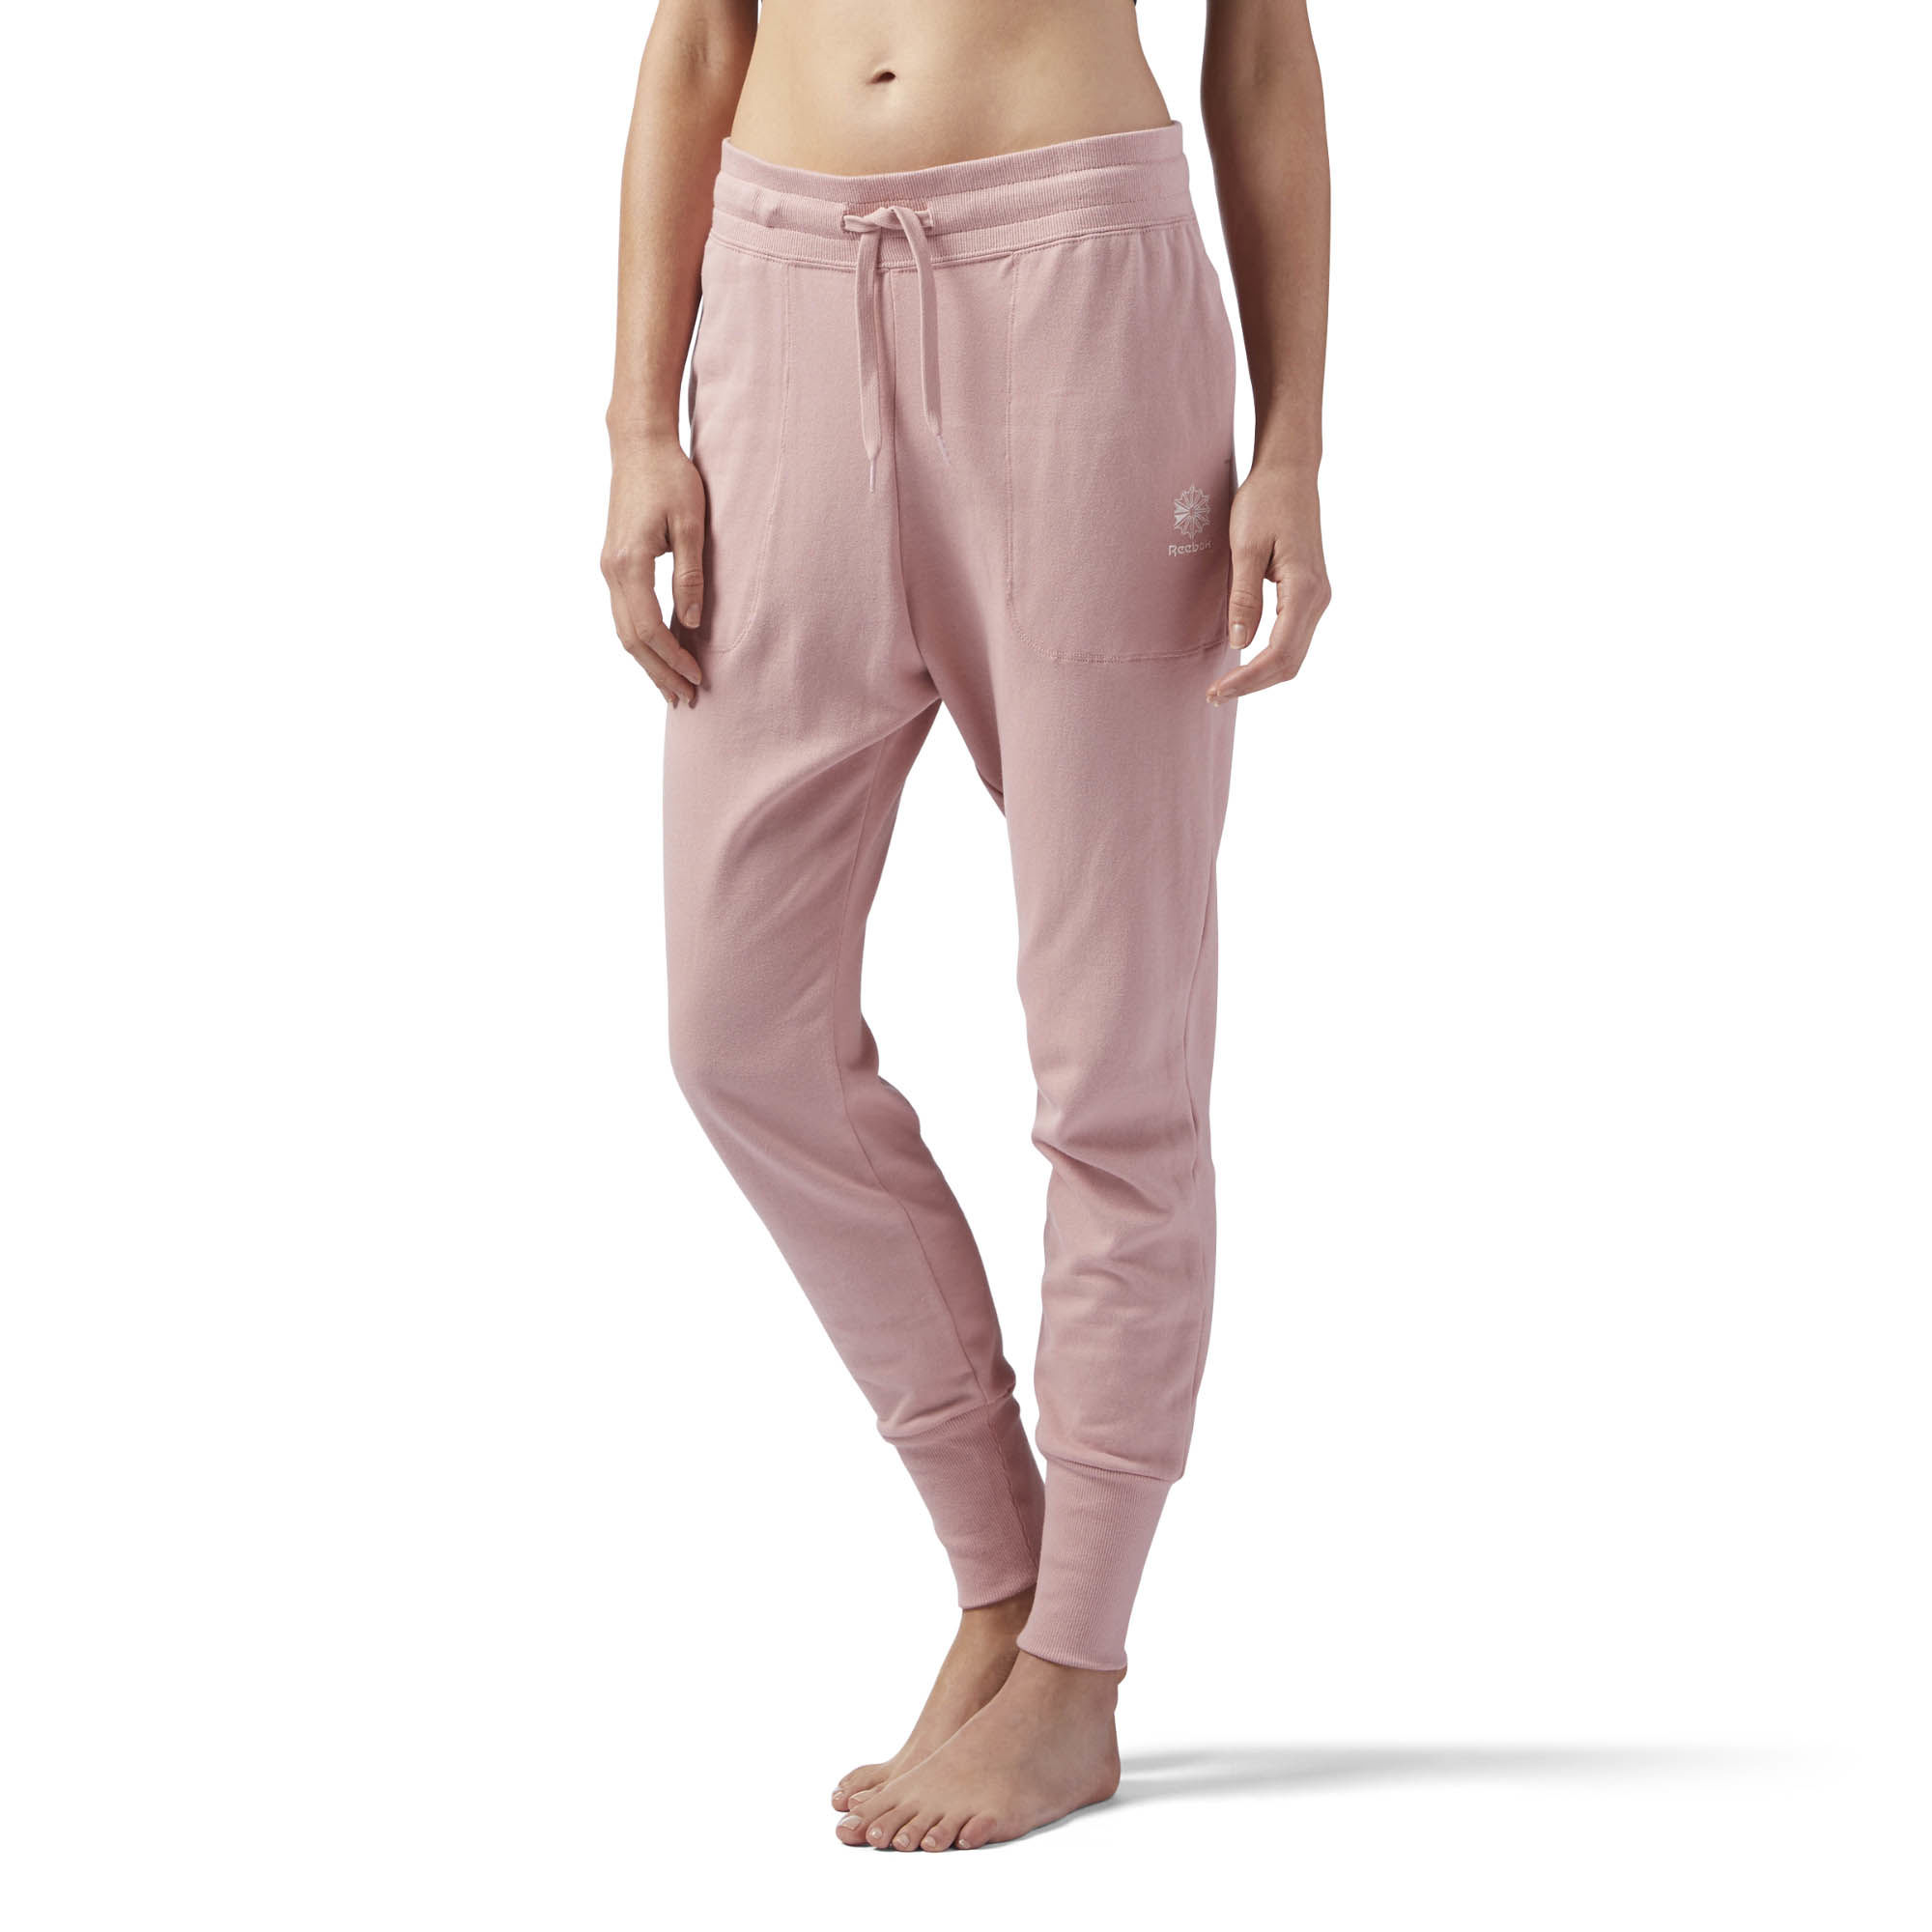 Брюки спортивные женские Reebok F Ft Pant, цвет: розовый. CY7879. Размер M (46/48) can t you sleep little bear libros infantiles original english books cuentos infantiles educativos children kids picture book